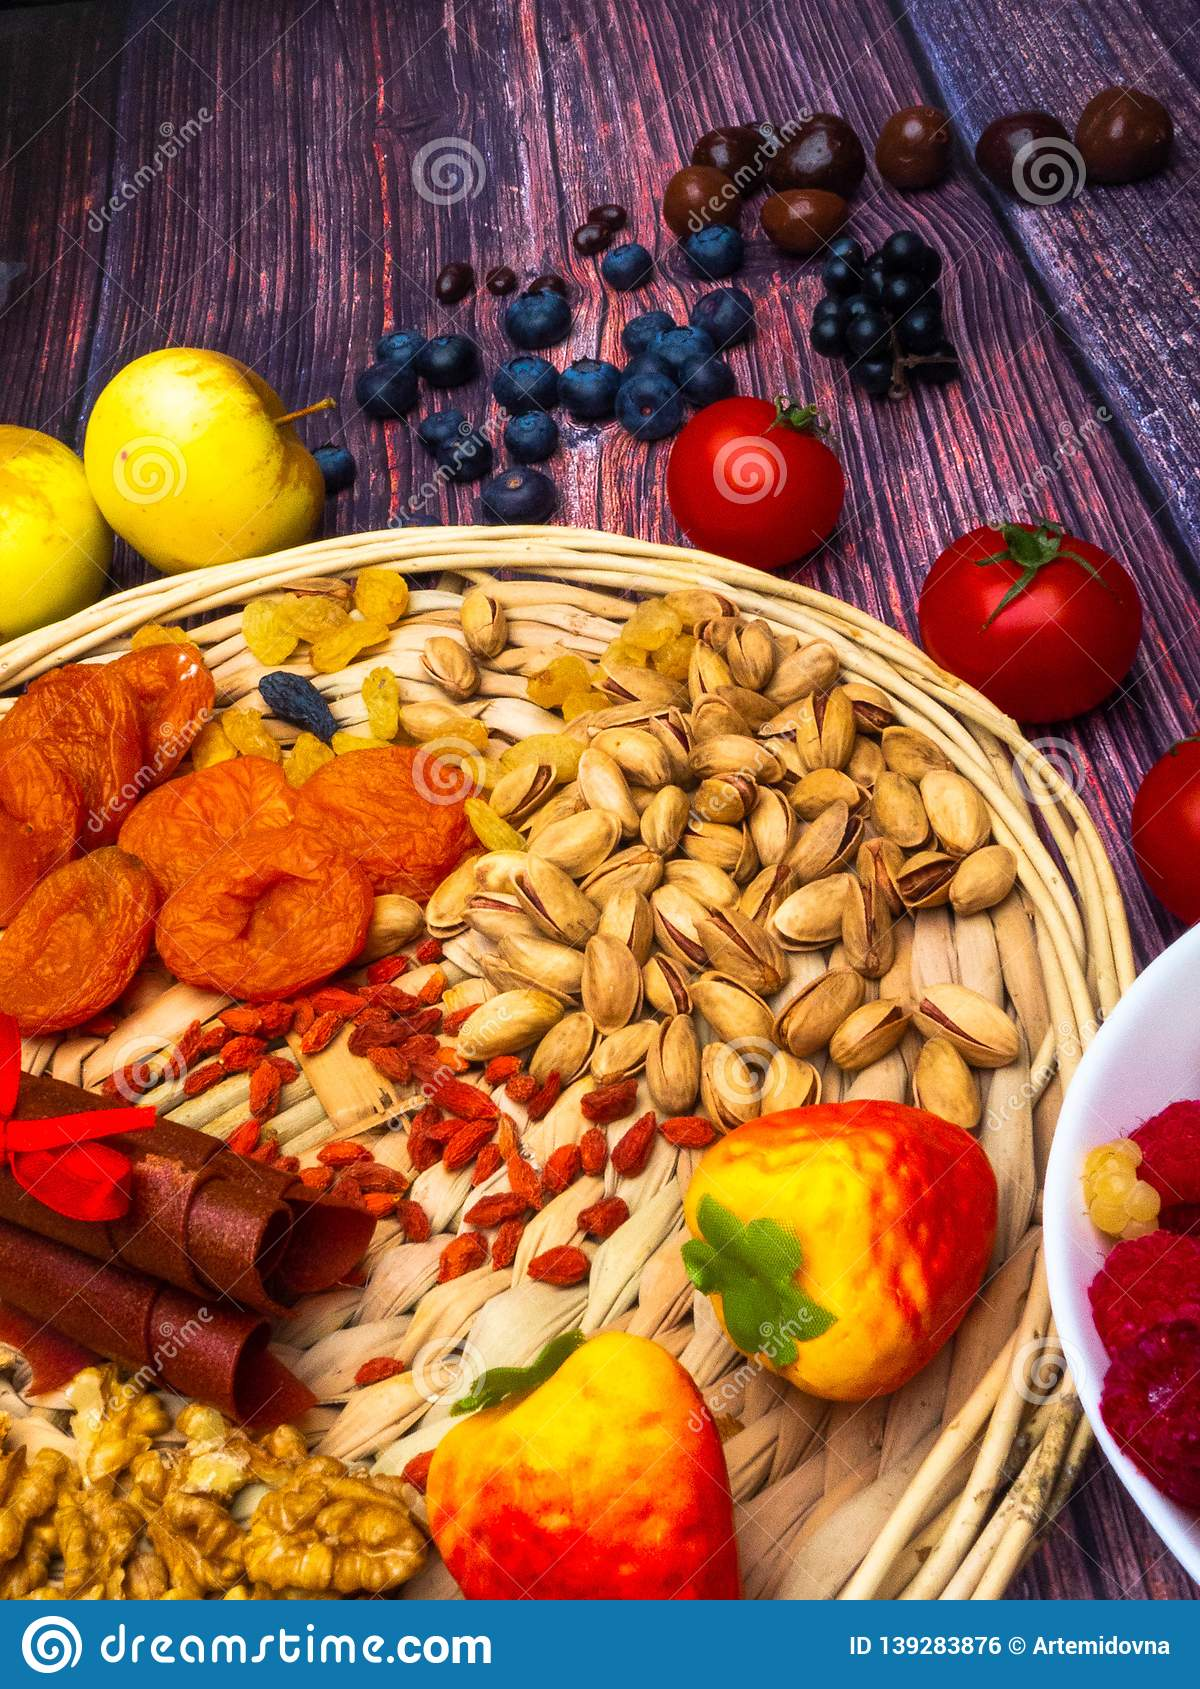 Antioxidants And Resveratrol Rich Food Food For Brain Stock Photo Image Of Food Concept 139283876